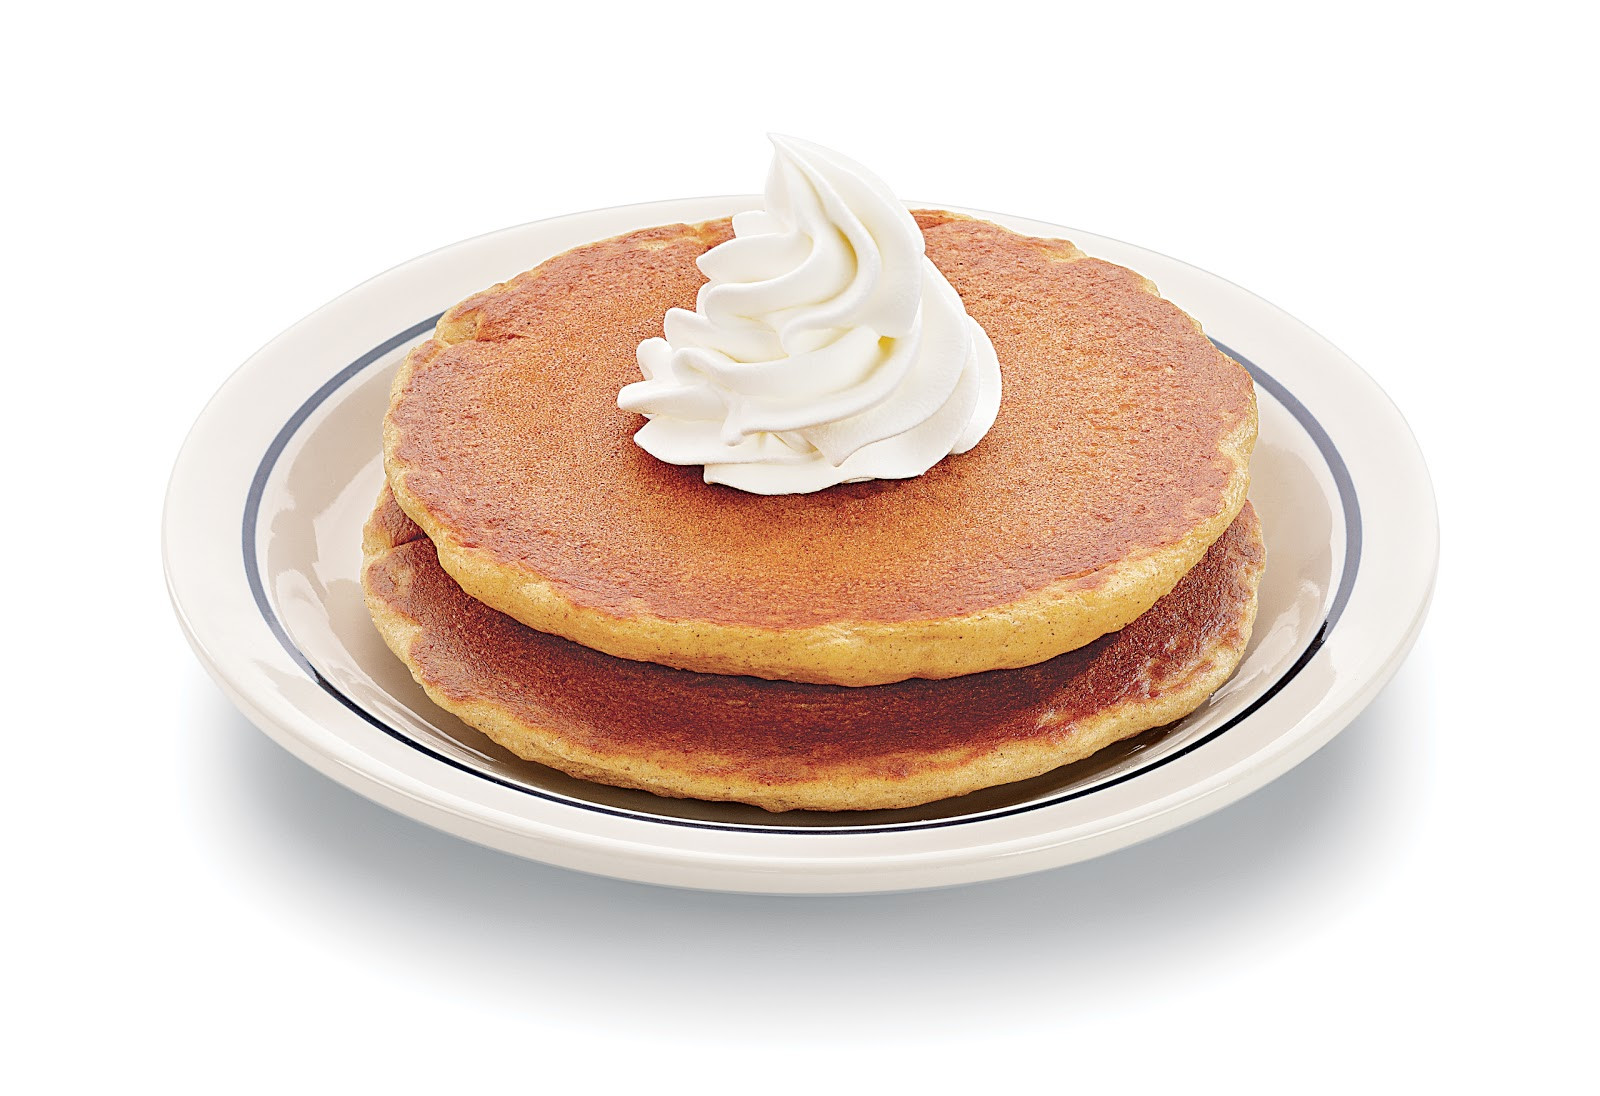 Ihop Pumpkin Pancakes  Pumpkin Pancakes at IHOP until January 3rd